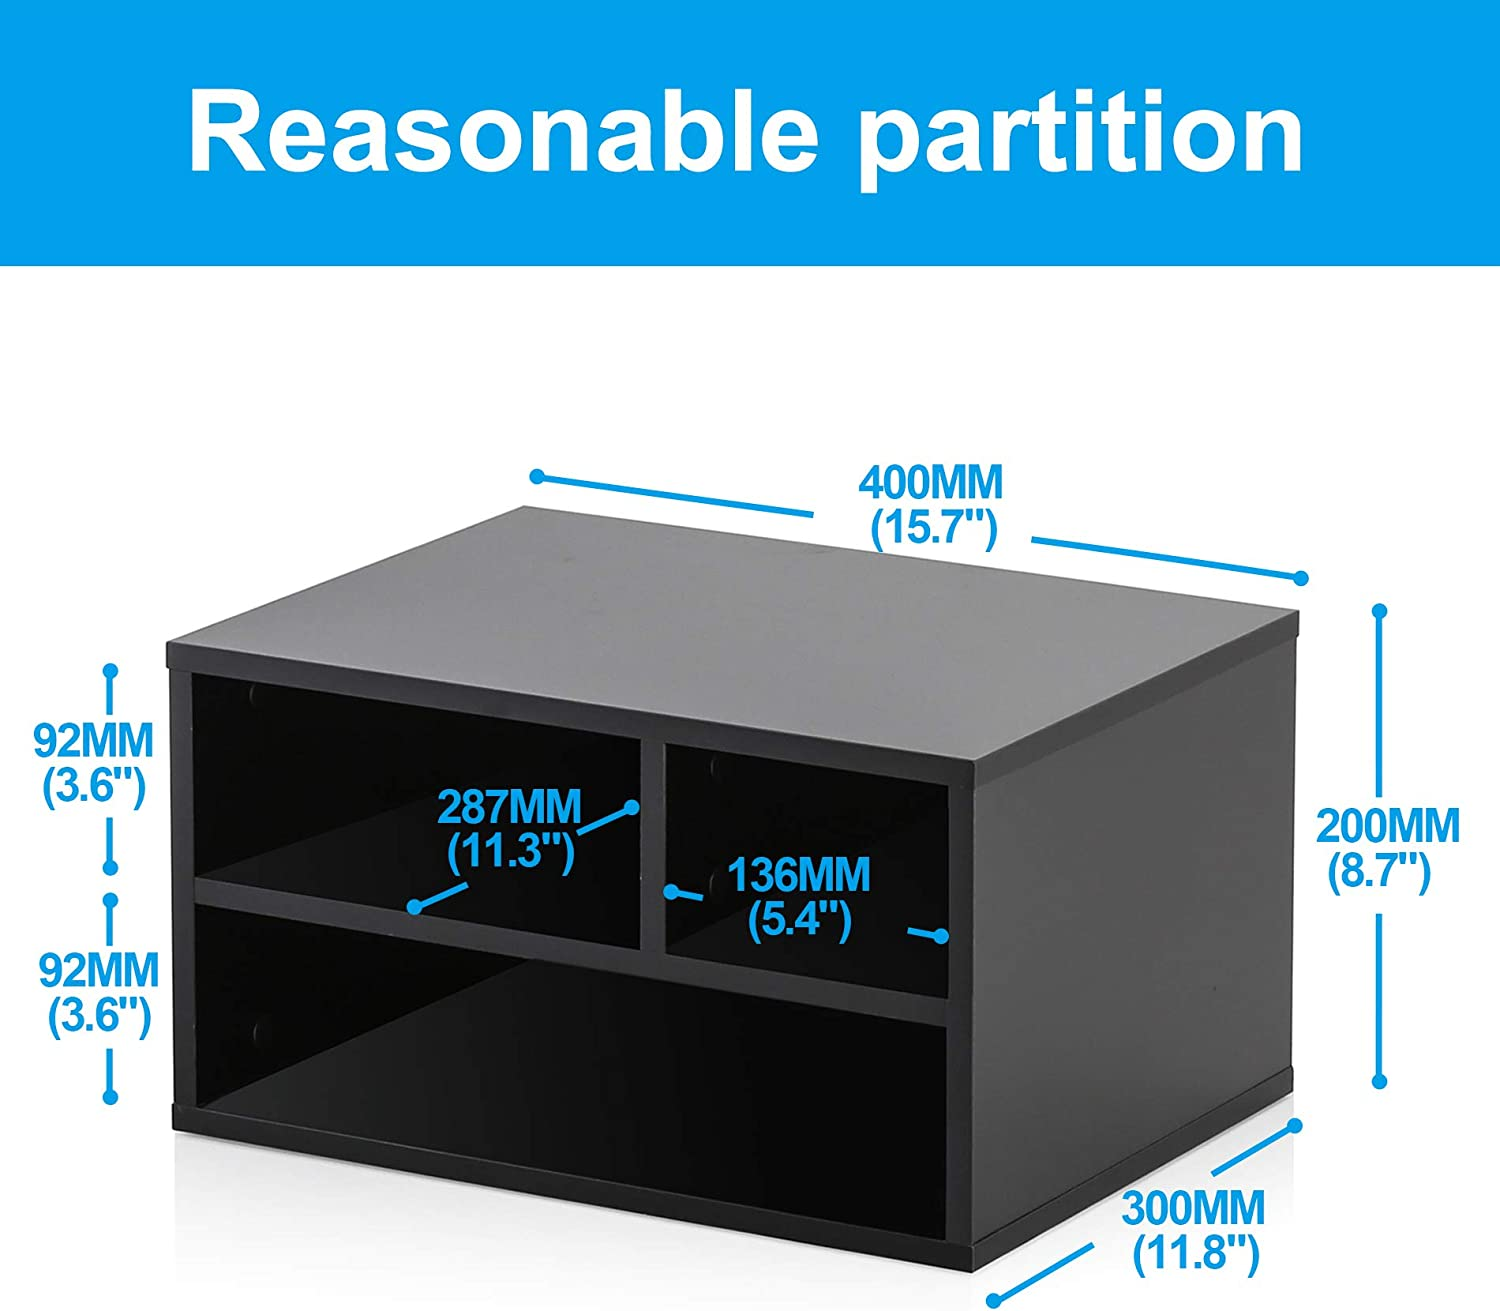 FITUEYES Wood Printer Stands with Storage, Workspace Desk Organizers for Home & Office, Black, DO304001WB : Office Products